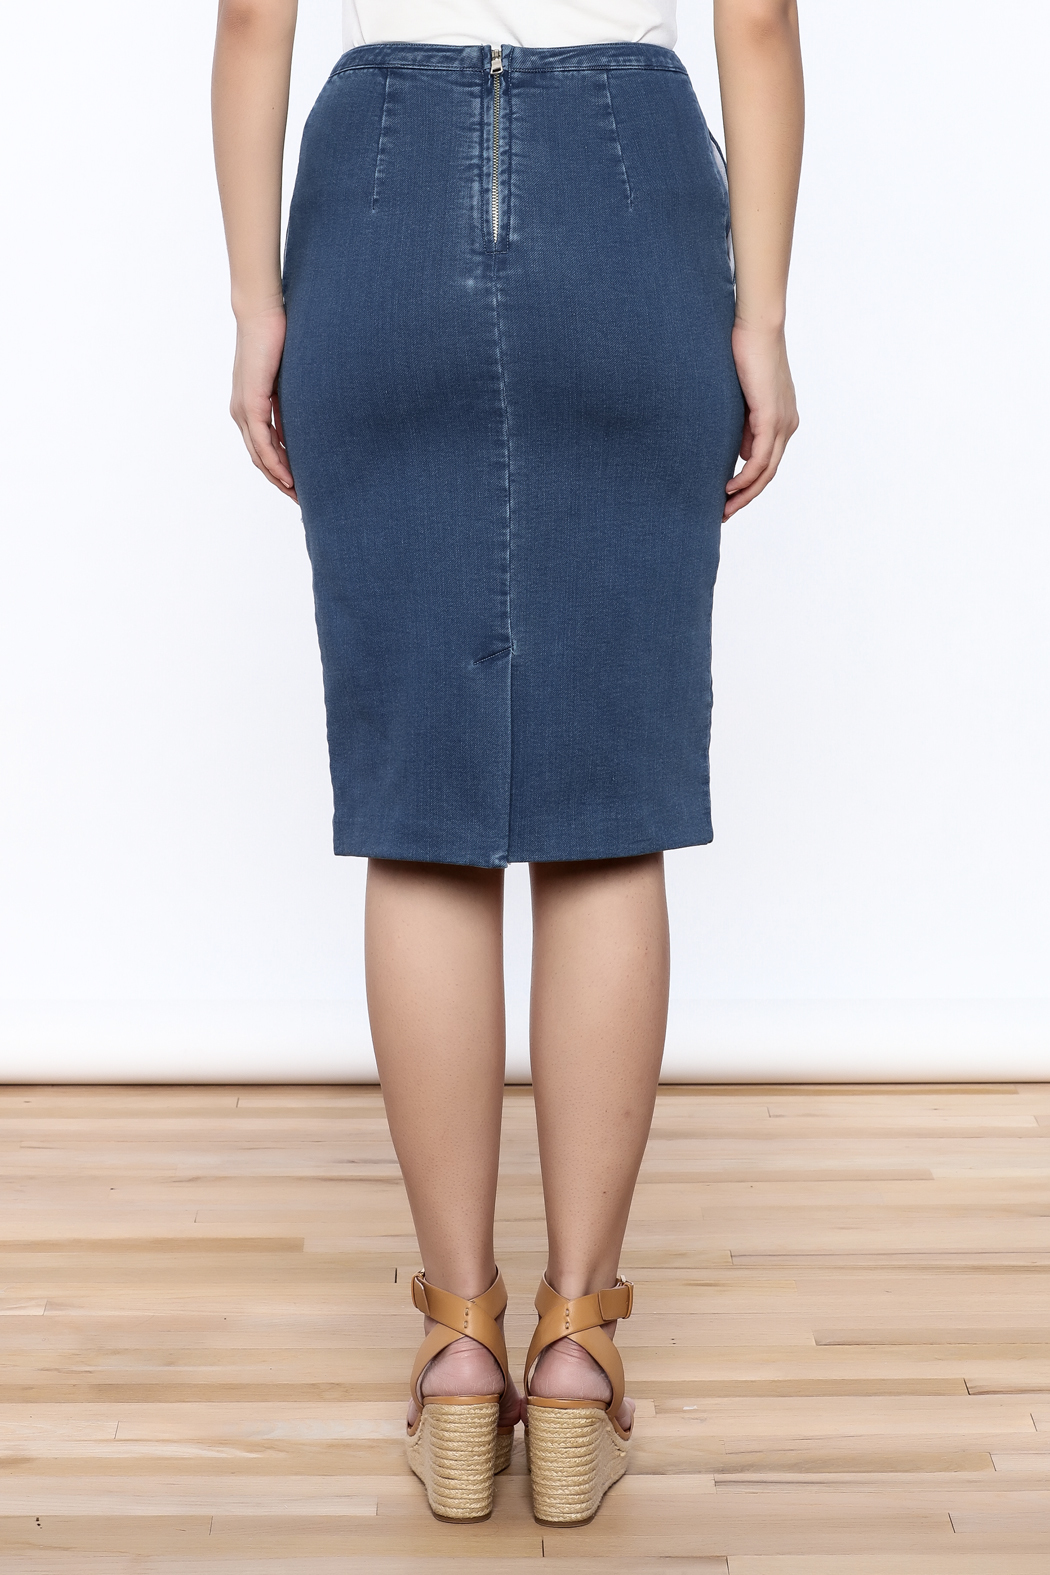 frnch denim pencil skirt from new york city by jupe